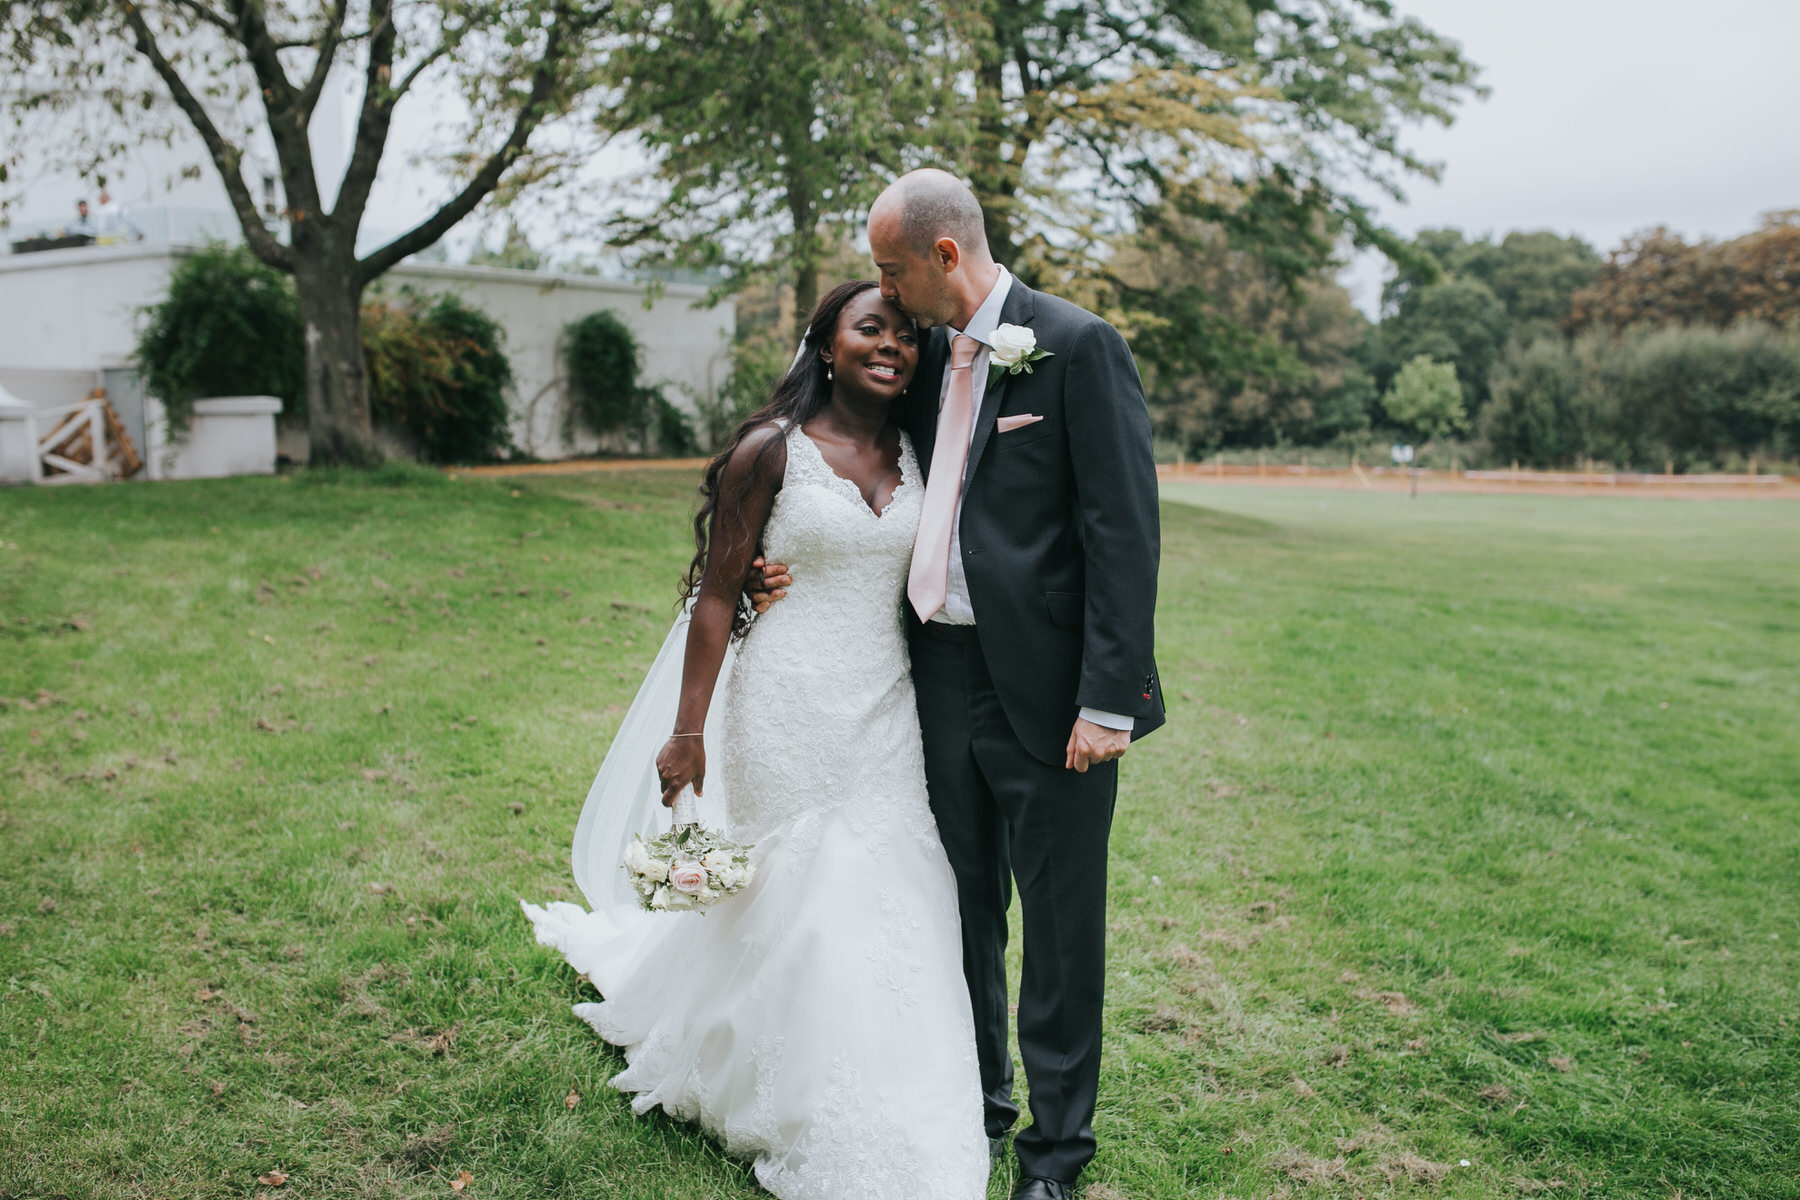 newly married couple intimate moment during wedding portraits .jpg